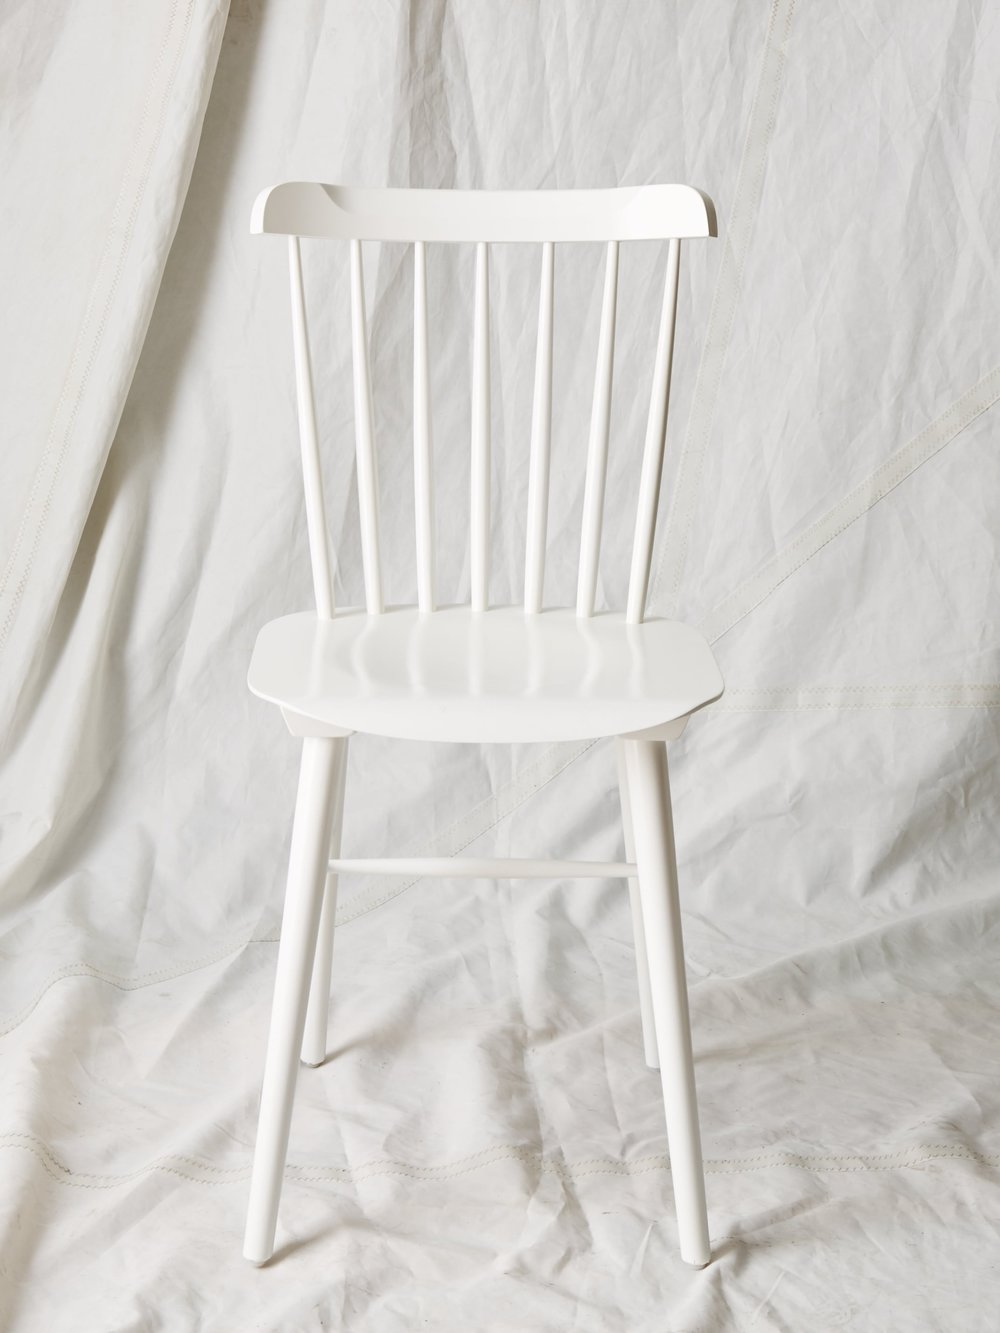 "CH004 White DWR Salt chair 34"" H x 15"" W x 16"" D $75/week Set of 1"